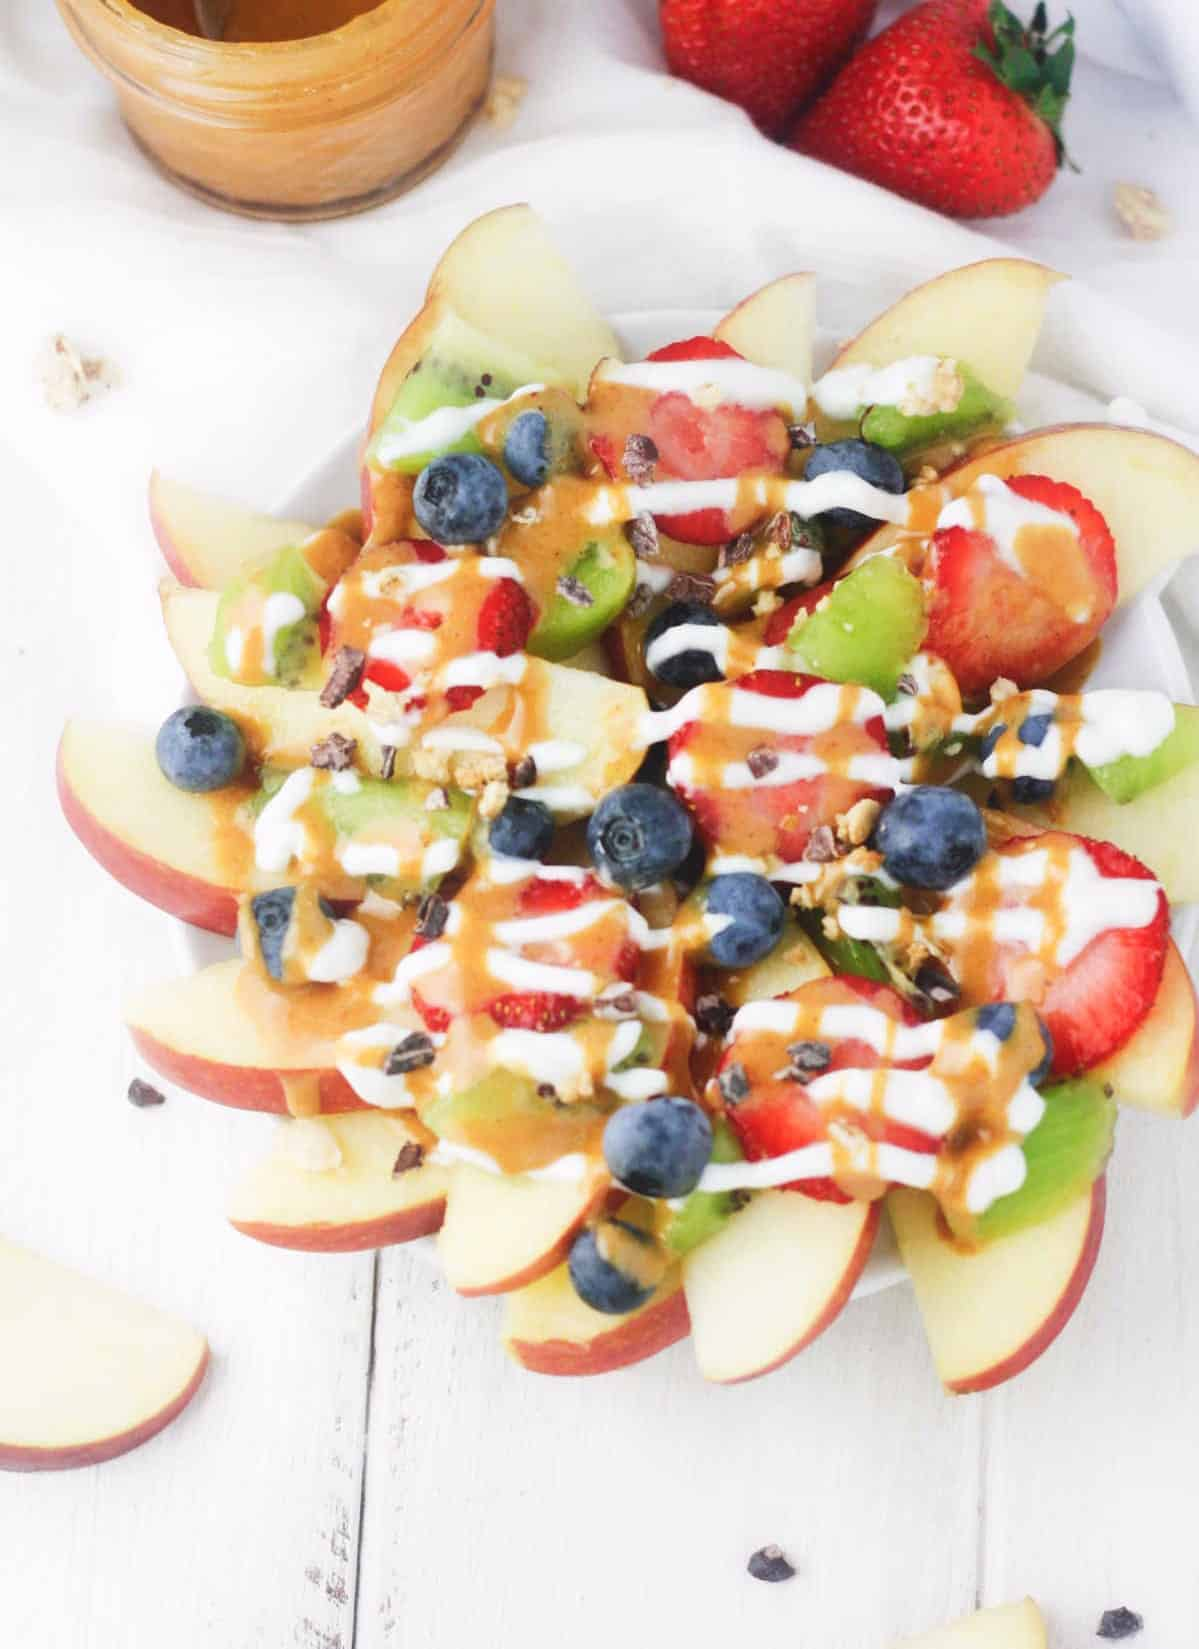 Easy Loaded Fruit Nachos. The perfect game day/movie night/anytime snack! Apple nacho slices, topped with a variety of fresh fruits, cacao nibs, granola and drizzled with Greek yogurt and a low calorie peanut butter maple drizzle. DOES IT GET BETTER?! www.itscheatdayeveryday.com